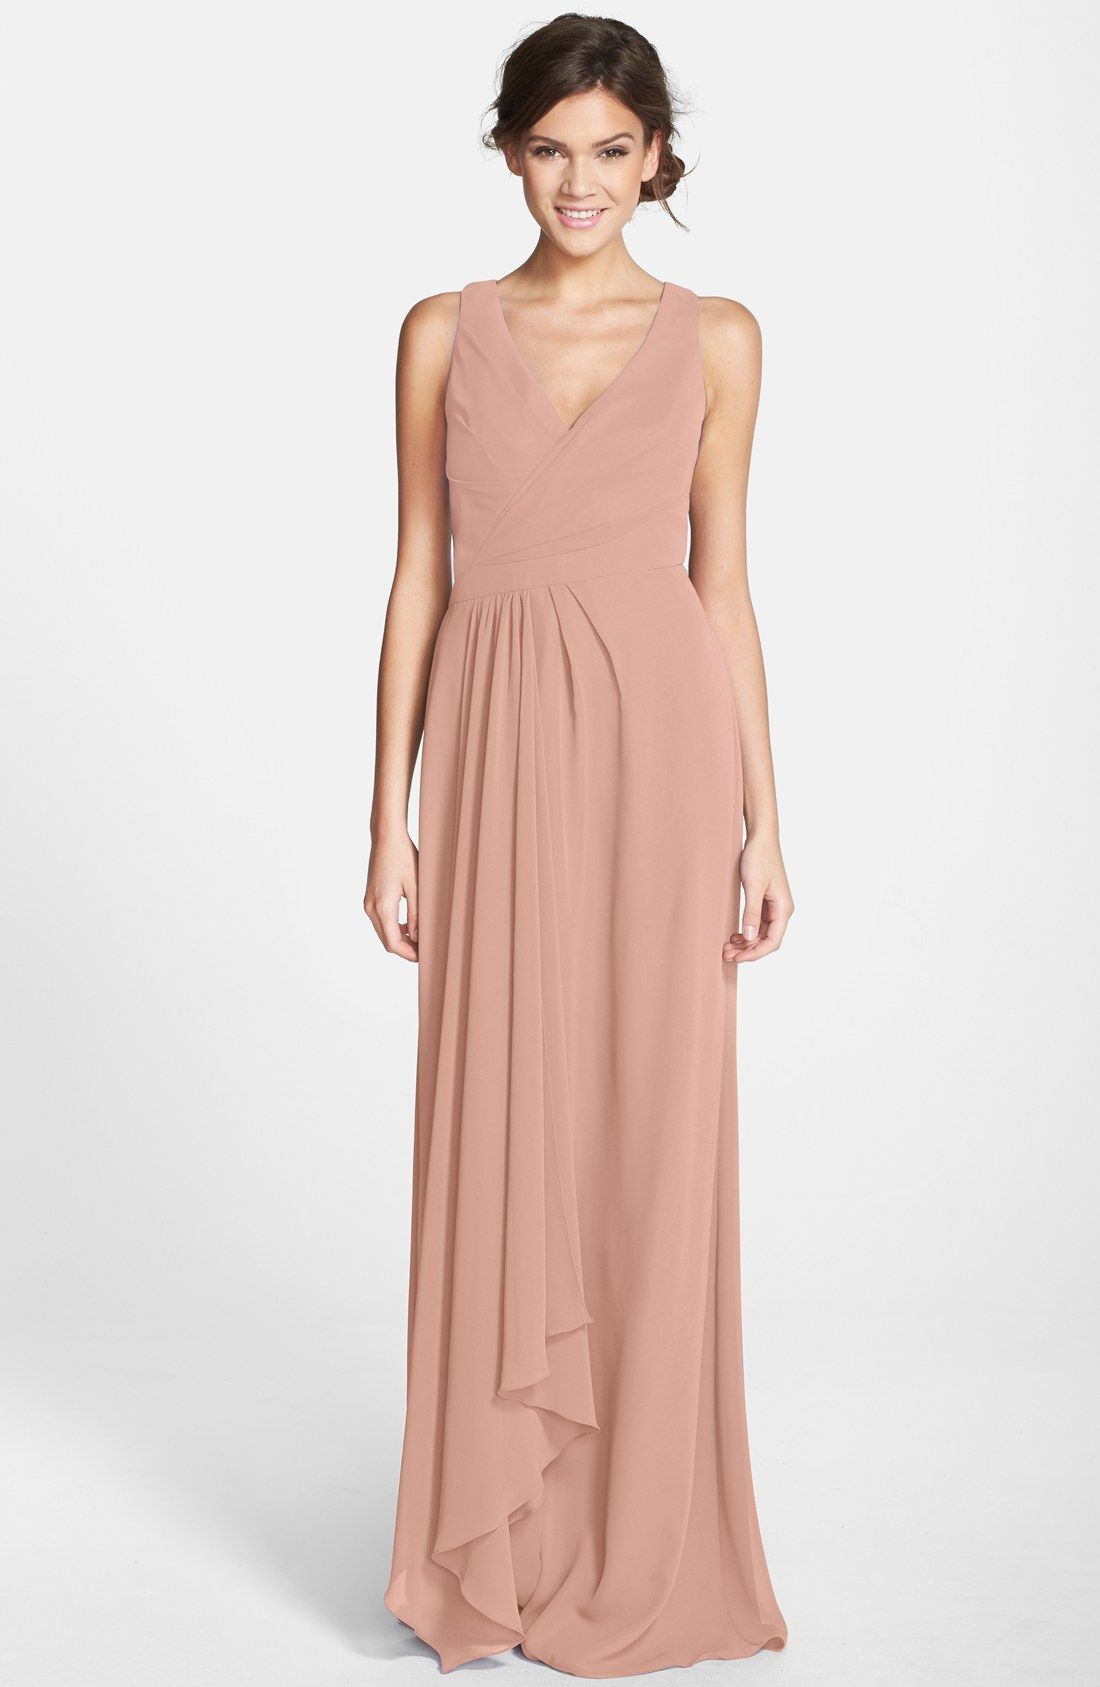 Sleeveless v neck chiffon gown nordstrom chiffon gown and lace monique lhuillier bridesmaids sleeveless v neck chiffon gown nordstrom exclusive ombrellifo Image collections